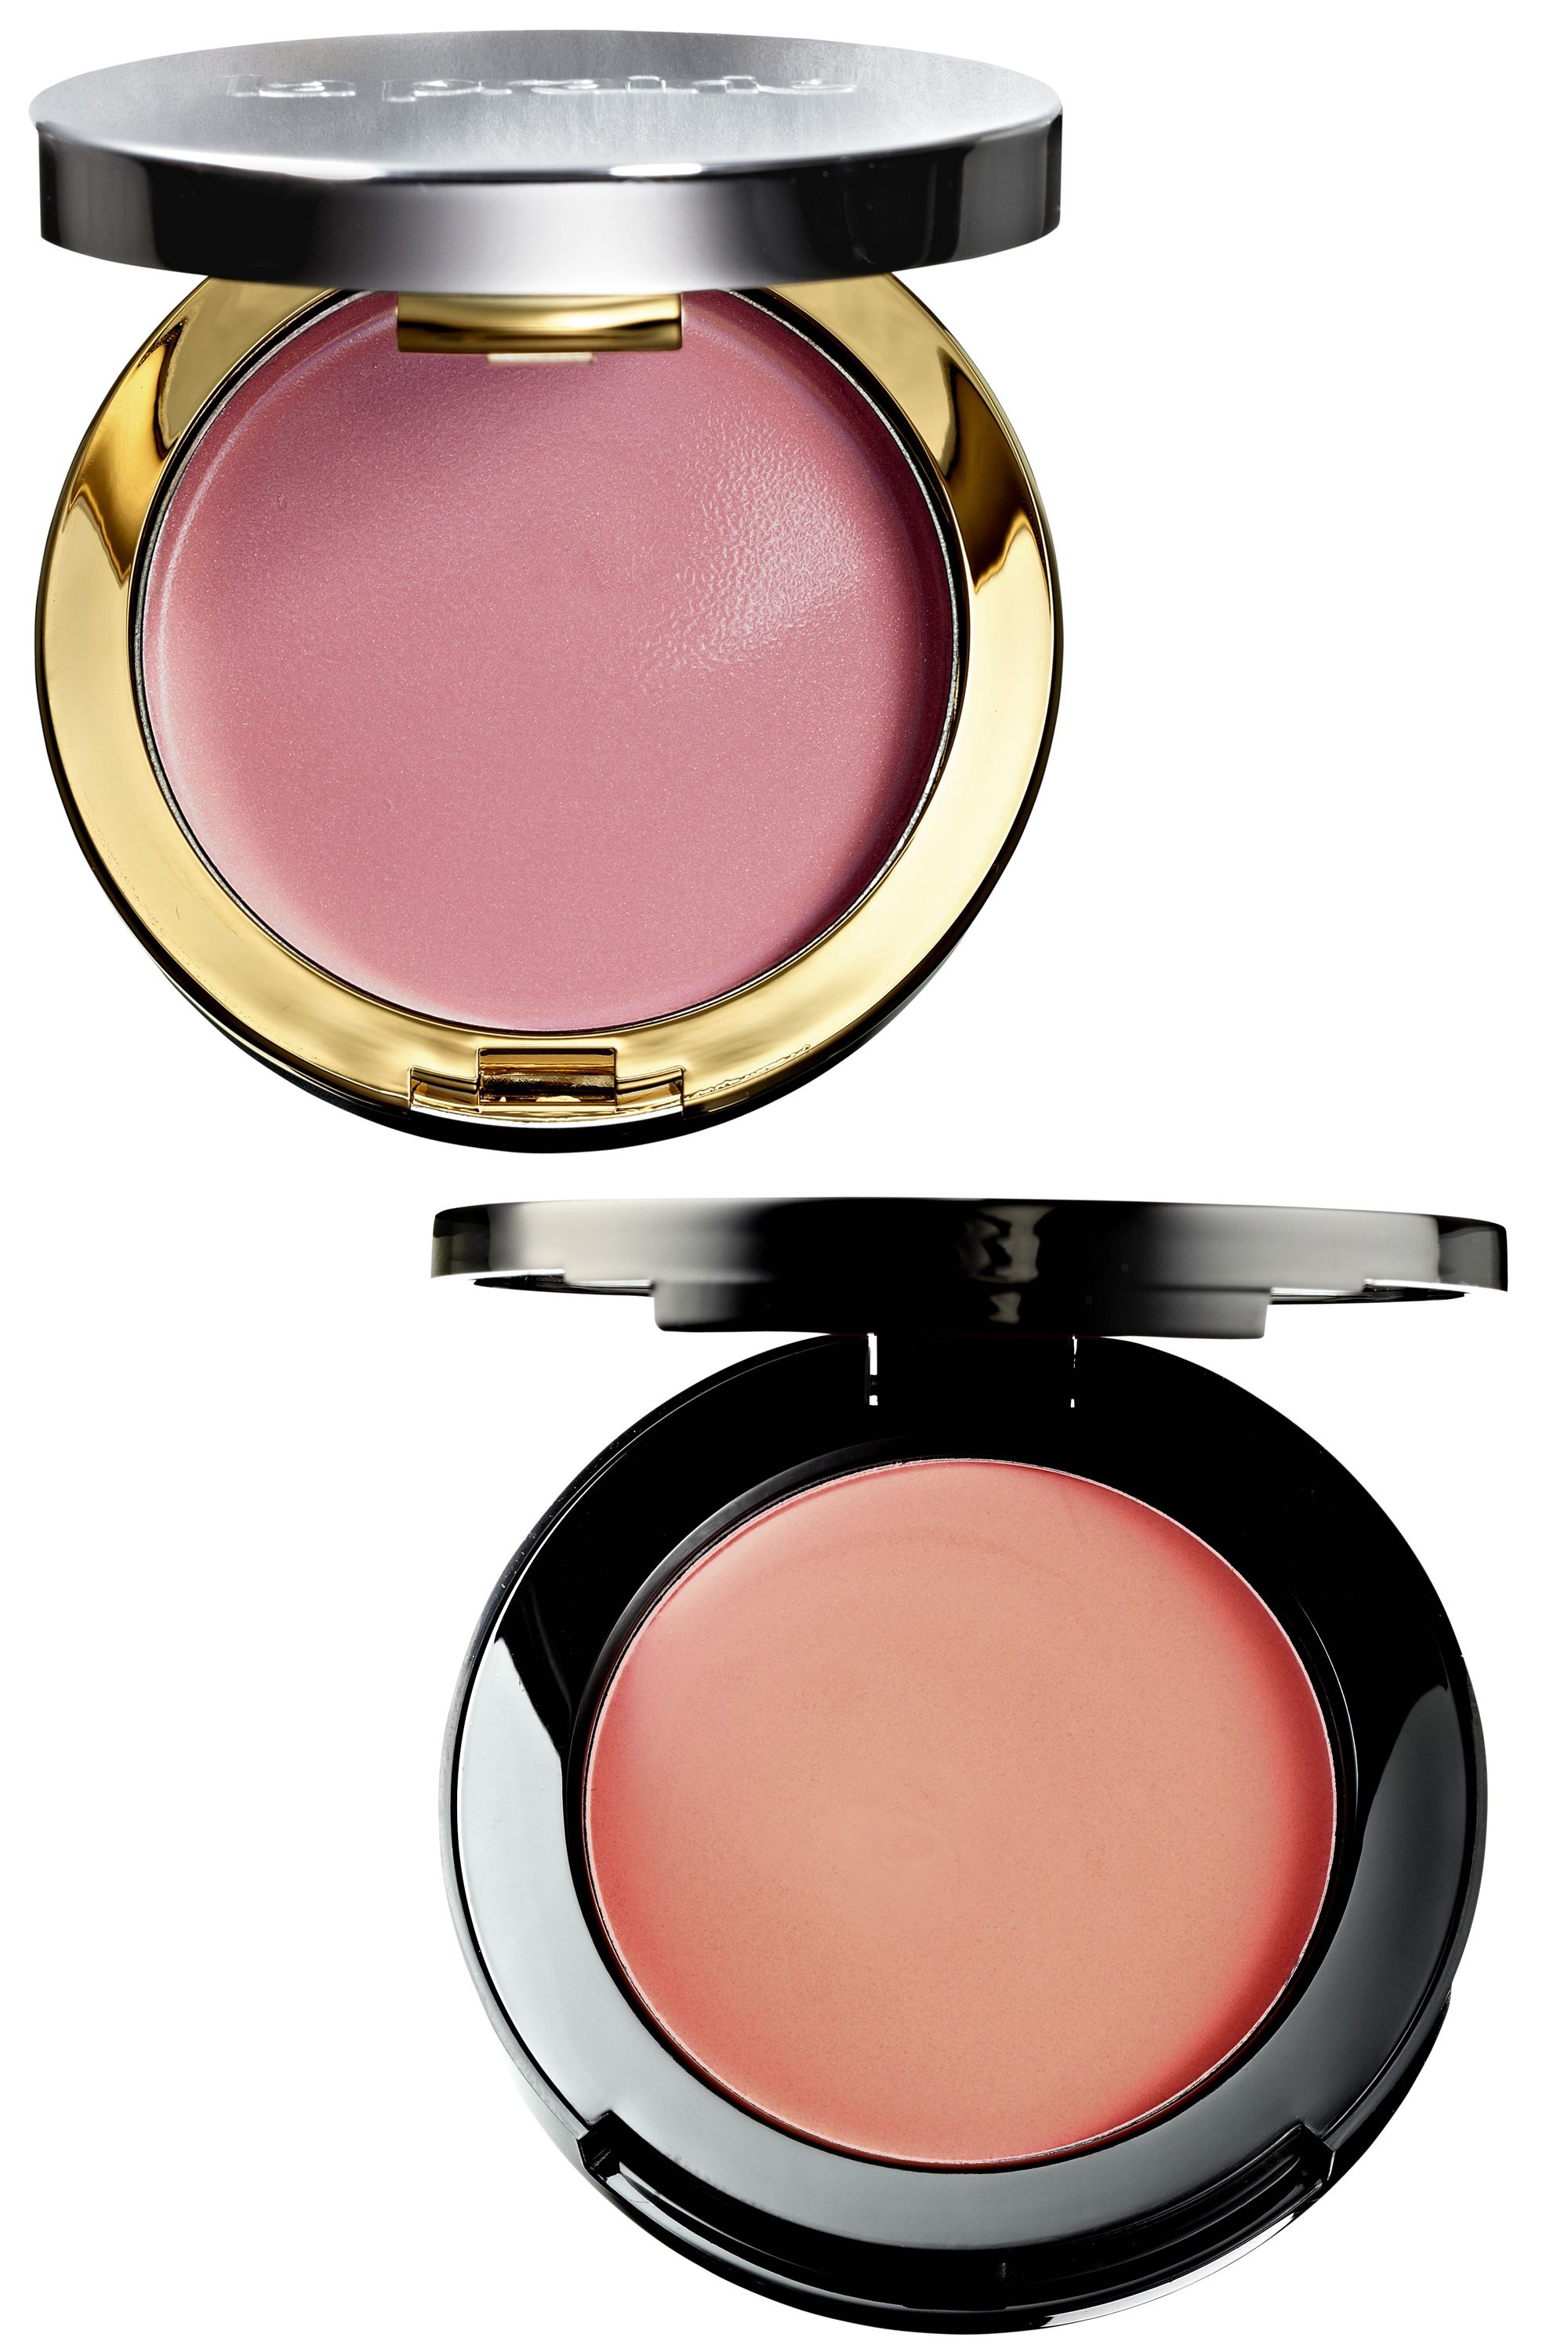 """I like to use a cream blush on the apples of my cheeks, as it gives a more dewy and natural finish. Bobbi Brown Pot Rouge for lips and cheeks in Powder Pink and Fresh Melon are my go-to shades. La Prairie also does a cream blush, called Cellular Radiance Cream Blush in Rose Glow.""  <strong>La Prairie</strong> Cream Blush in Rose Glow, $70, <a target=""_blank"" href=""http://www.laprairie.com/default/root/cellular-radiance-cream-blush/95790-00184-10.html?gclid=CjwKEAjw9bKpBRD-geiF8OHz4EcSJACO4O7TlKZiEnW48MMMAe8x9dnXYsDDL1Rai3AeQQE9akH10RoCUwTw_wcB"">laprairie.com</a>; <strong>Bobbi Brown </strong>Pot Rouge in Fresh Melon, $27, <a target=""_blank"" href=""http://www.sephora.com/pot-rouge-for-lips-cheeks-P270553?skuId=1482512&om_mmc=ppc-GG&mkwid=XtrPMqzI&pcrid=49113163479&pdv=c&site=us_search&country_switch=us&lang=en&gclid=CjwKEAjw9bKpBRD-geiF8OHz4EcSJACO4O7TGhtbwo63OzzJU-P6ZAAAJrNcVMs7X58yJM-iXdR5dxoCjb7w_wcB"">sephora.com</a>."